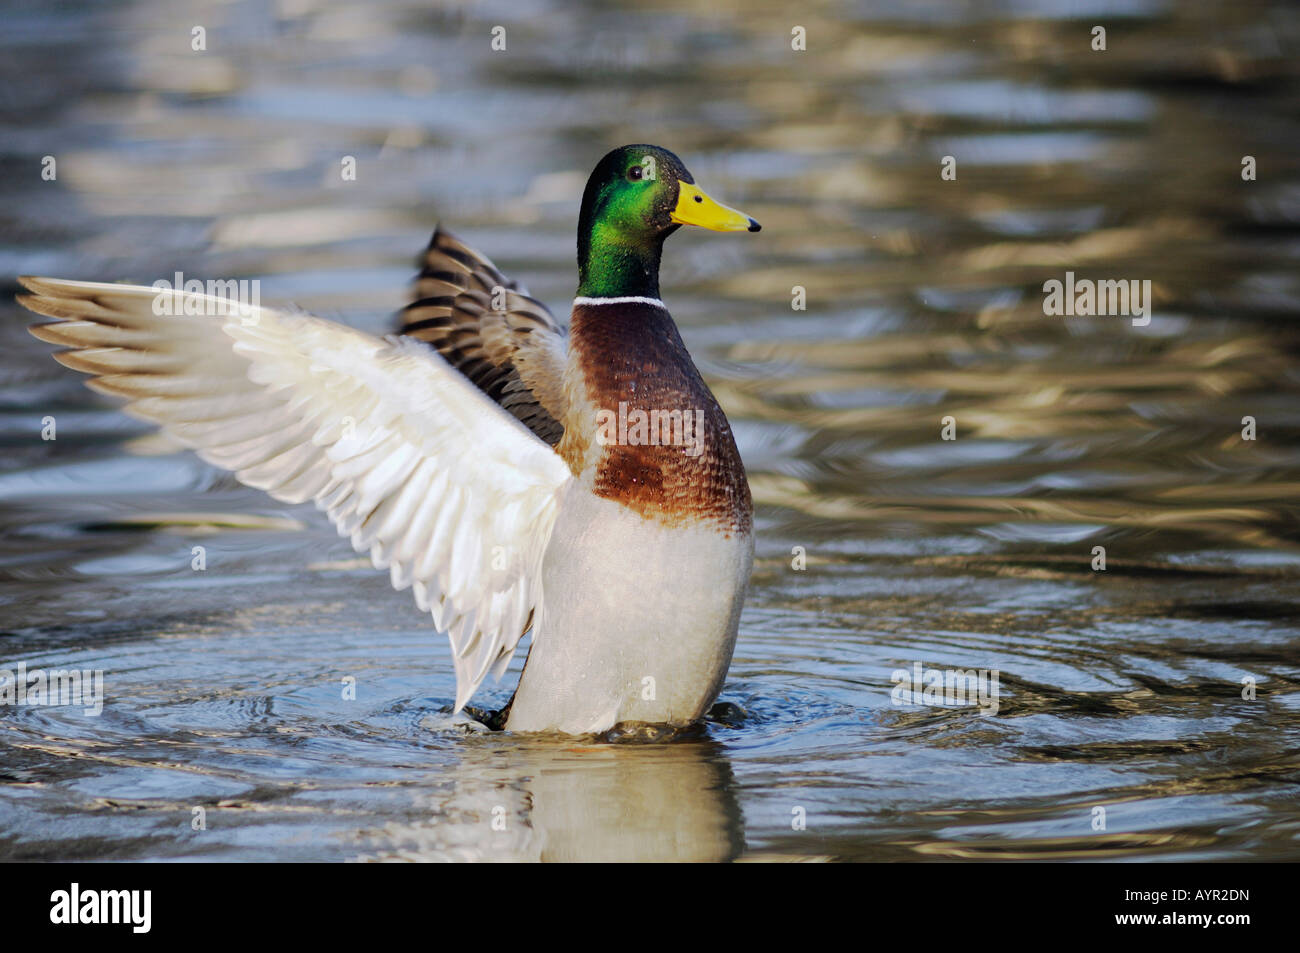 Mallard Duck (Anas platyrhynchos) flapping its wings in the water - Stock Image